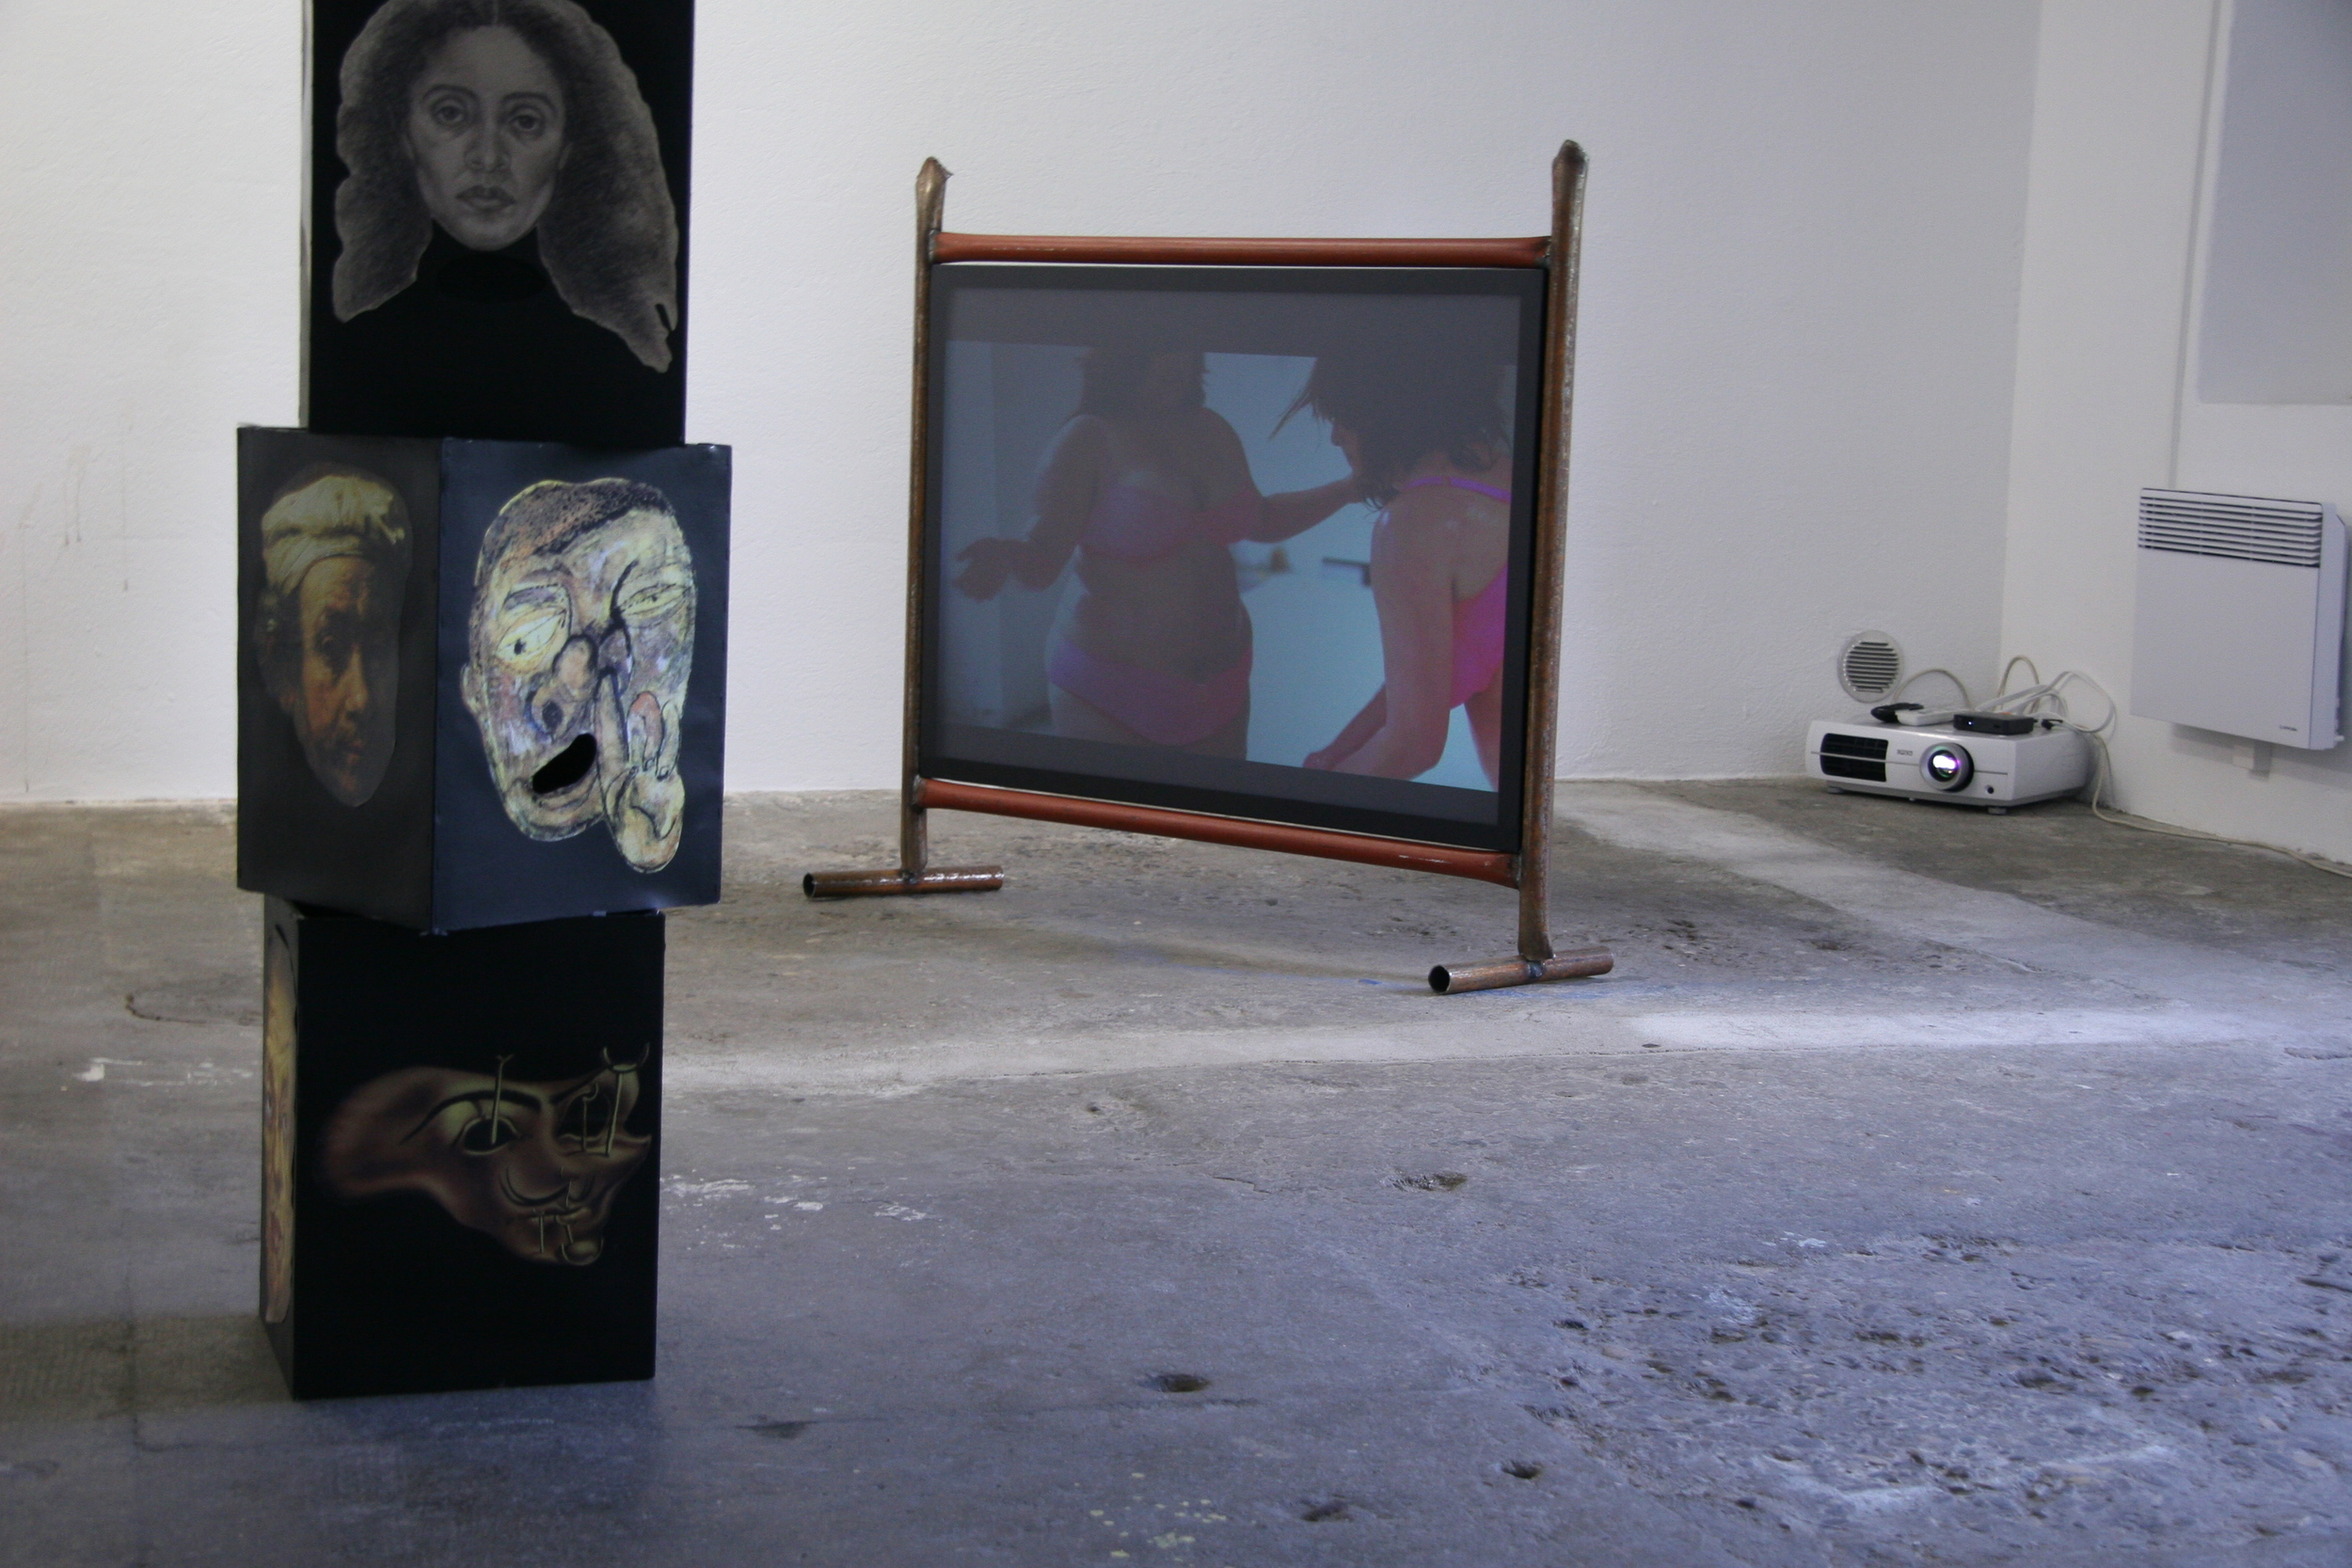 Present Continuous, 2016, Installation view, video projection on metal structure, looped video is 5 minutes and 32 seconds. Exhibition view No local, No global, Wallriss, Fribourg, 2013.